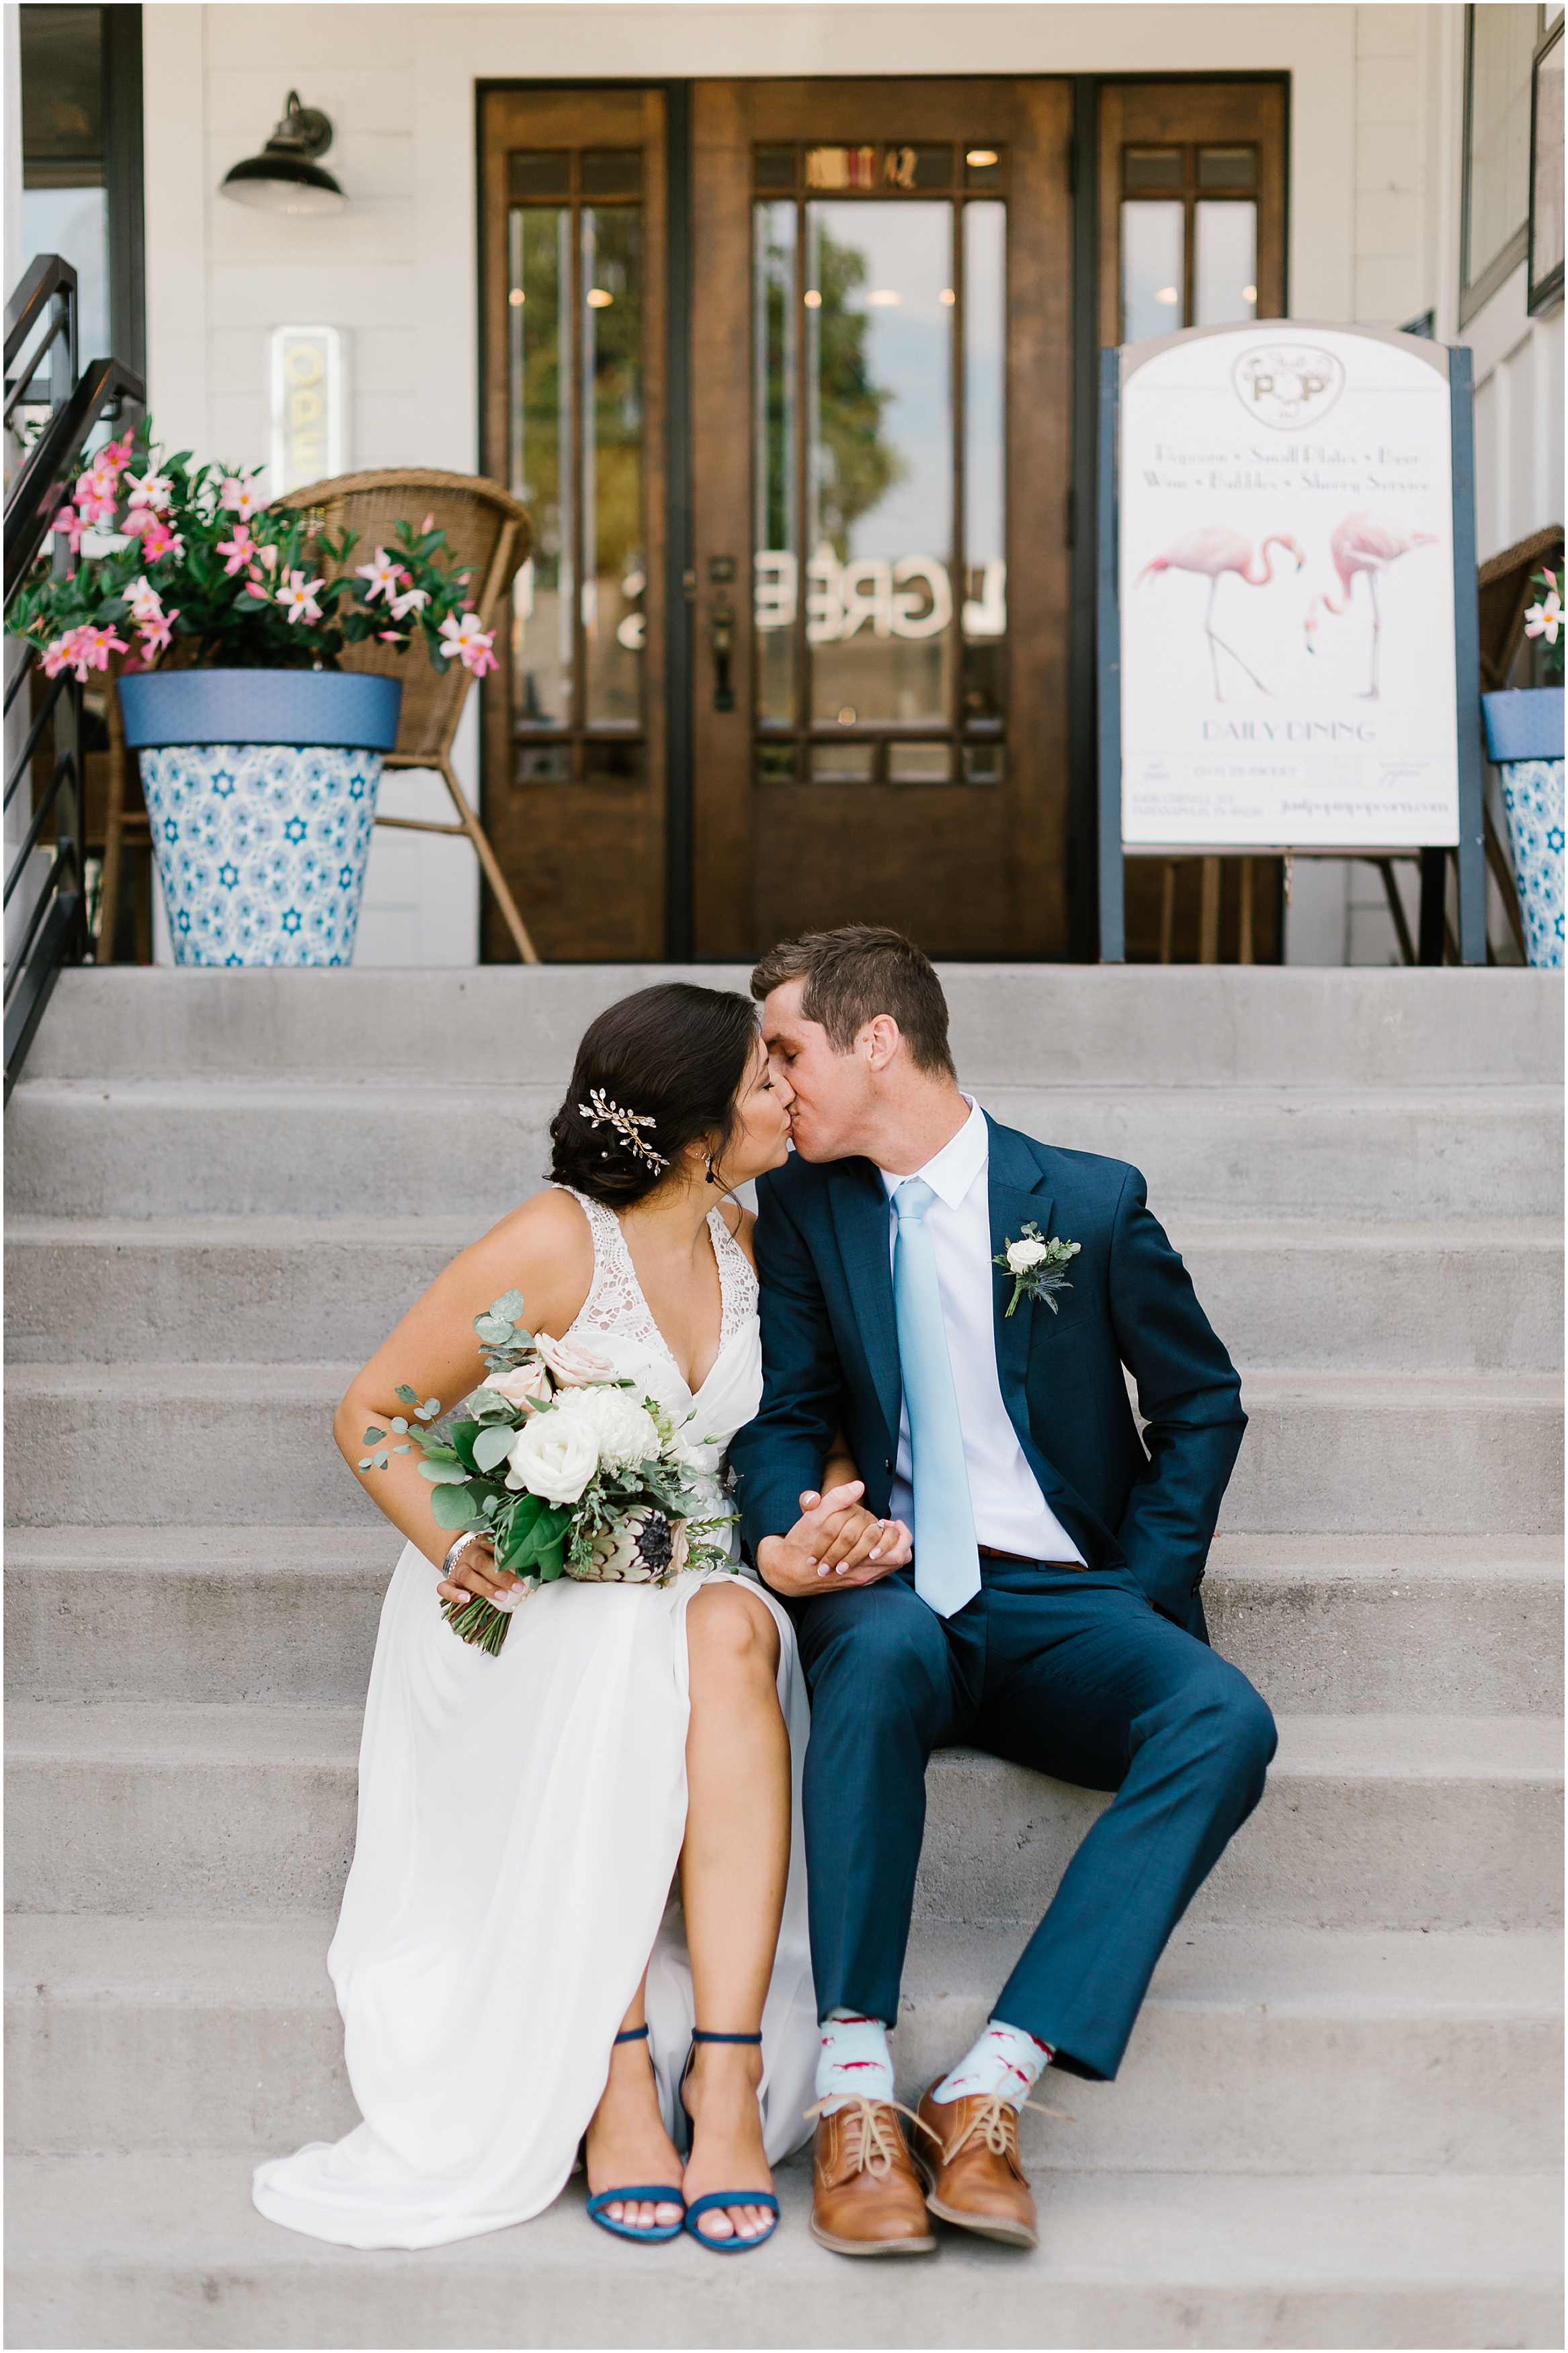 Rebecca Shehorn Photography Indianapolis Wedding Photographer Just Pop In Wedding_0645.jpg